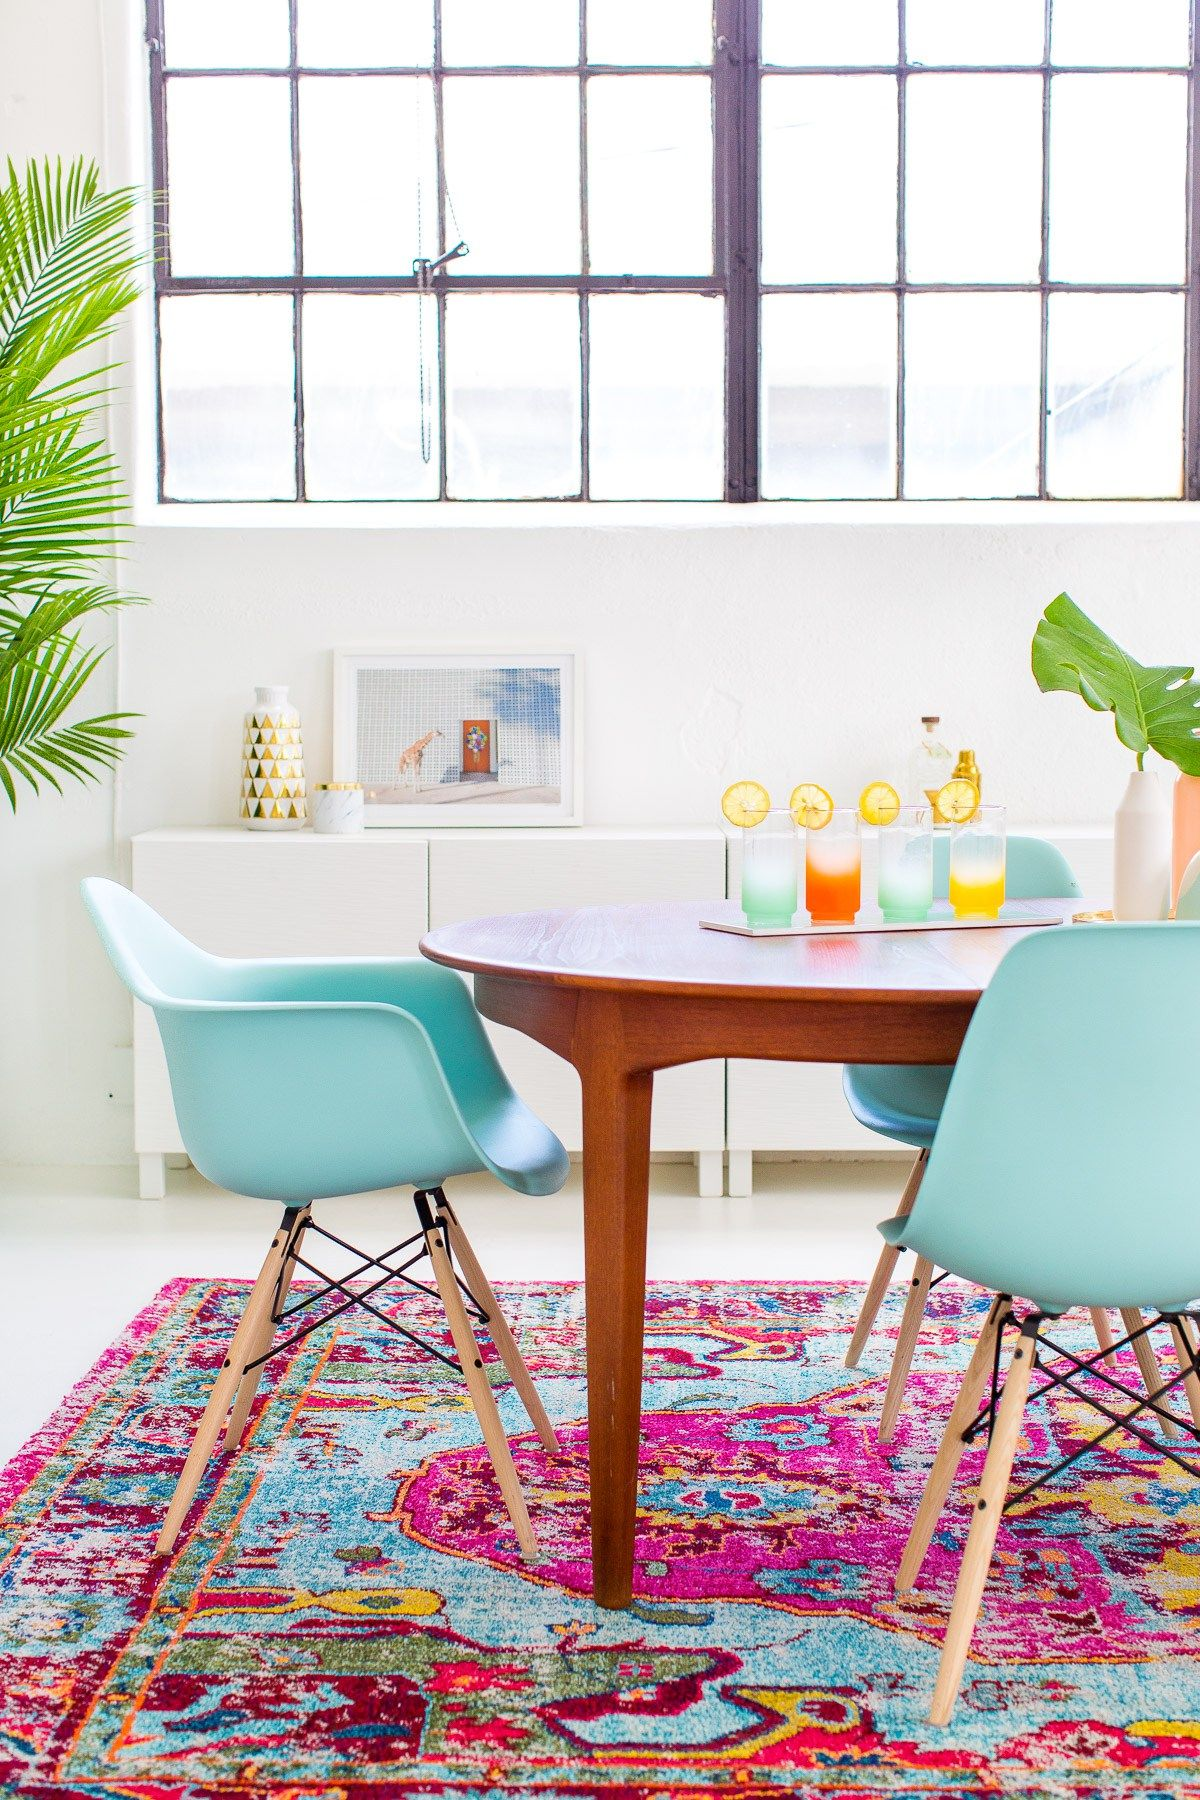 a joyful and modern dining room for summer | Sugaring, Room and ...